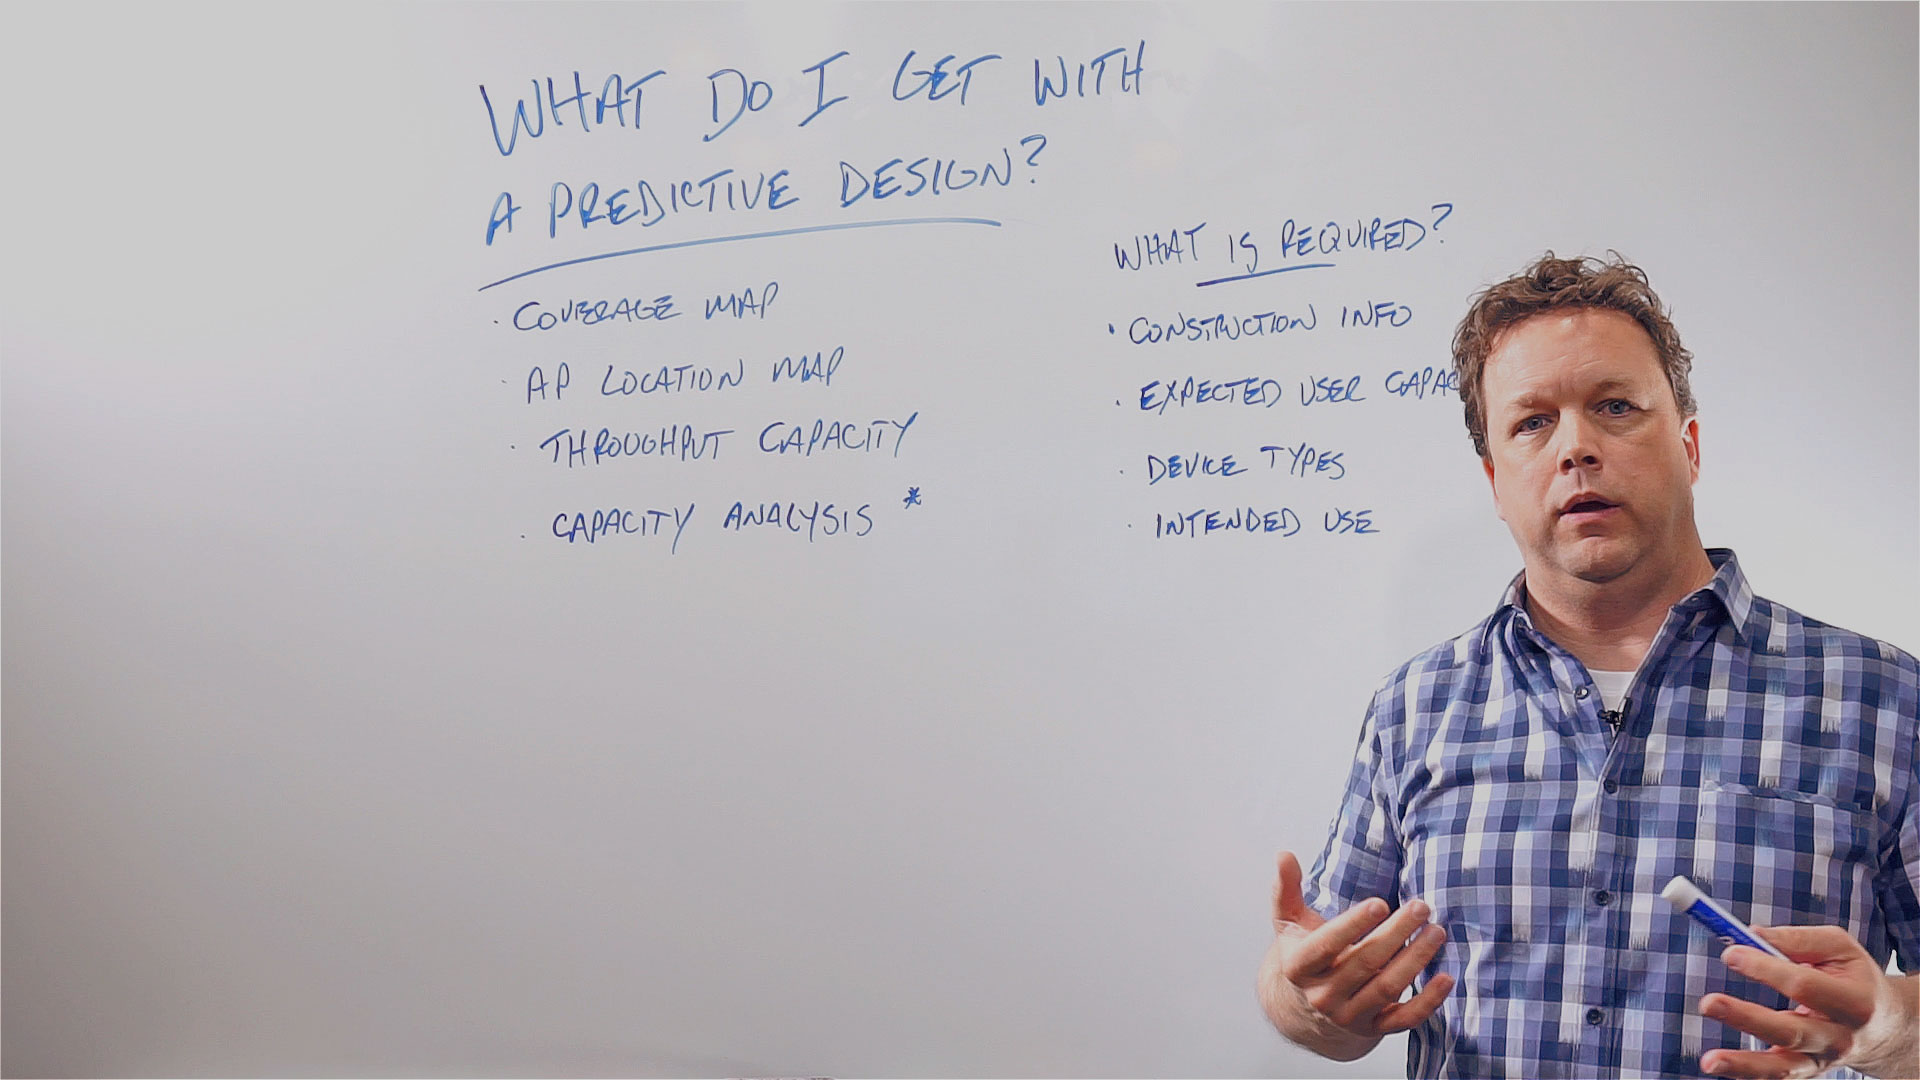 Predictive Wireless Designs: What You Should Expect to Receive [Whiteboard Wednesday]